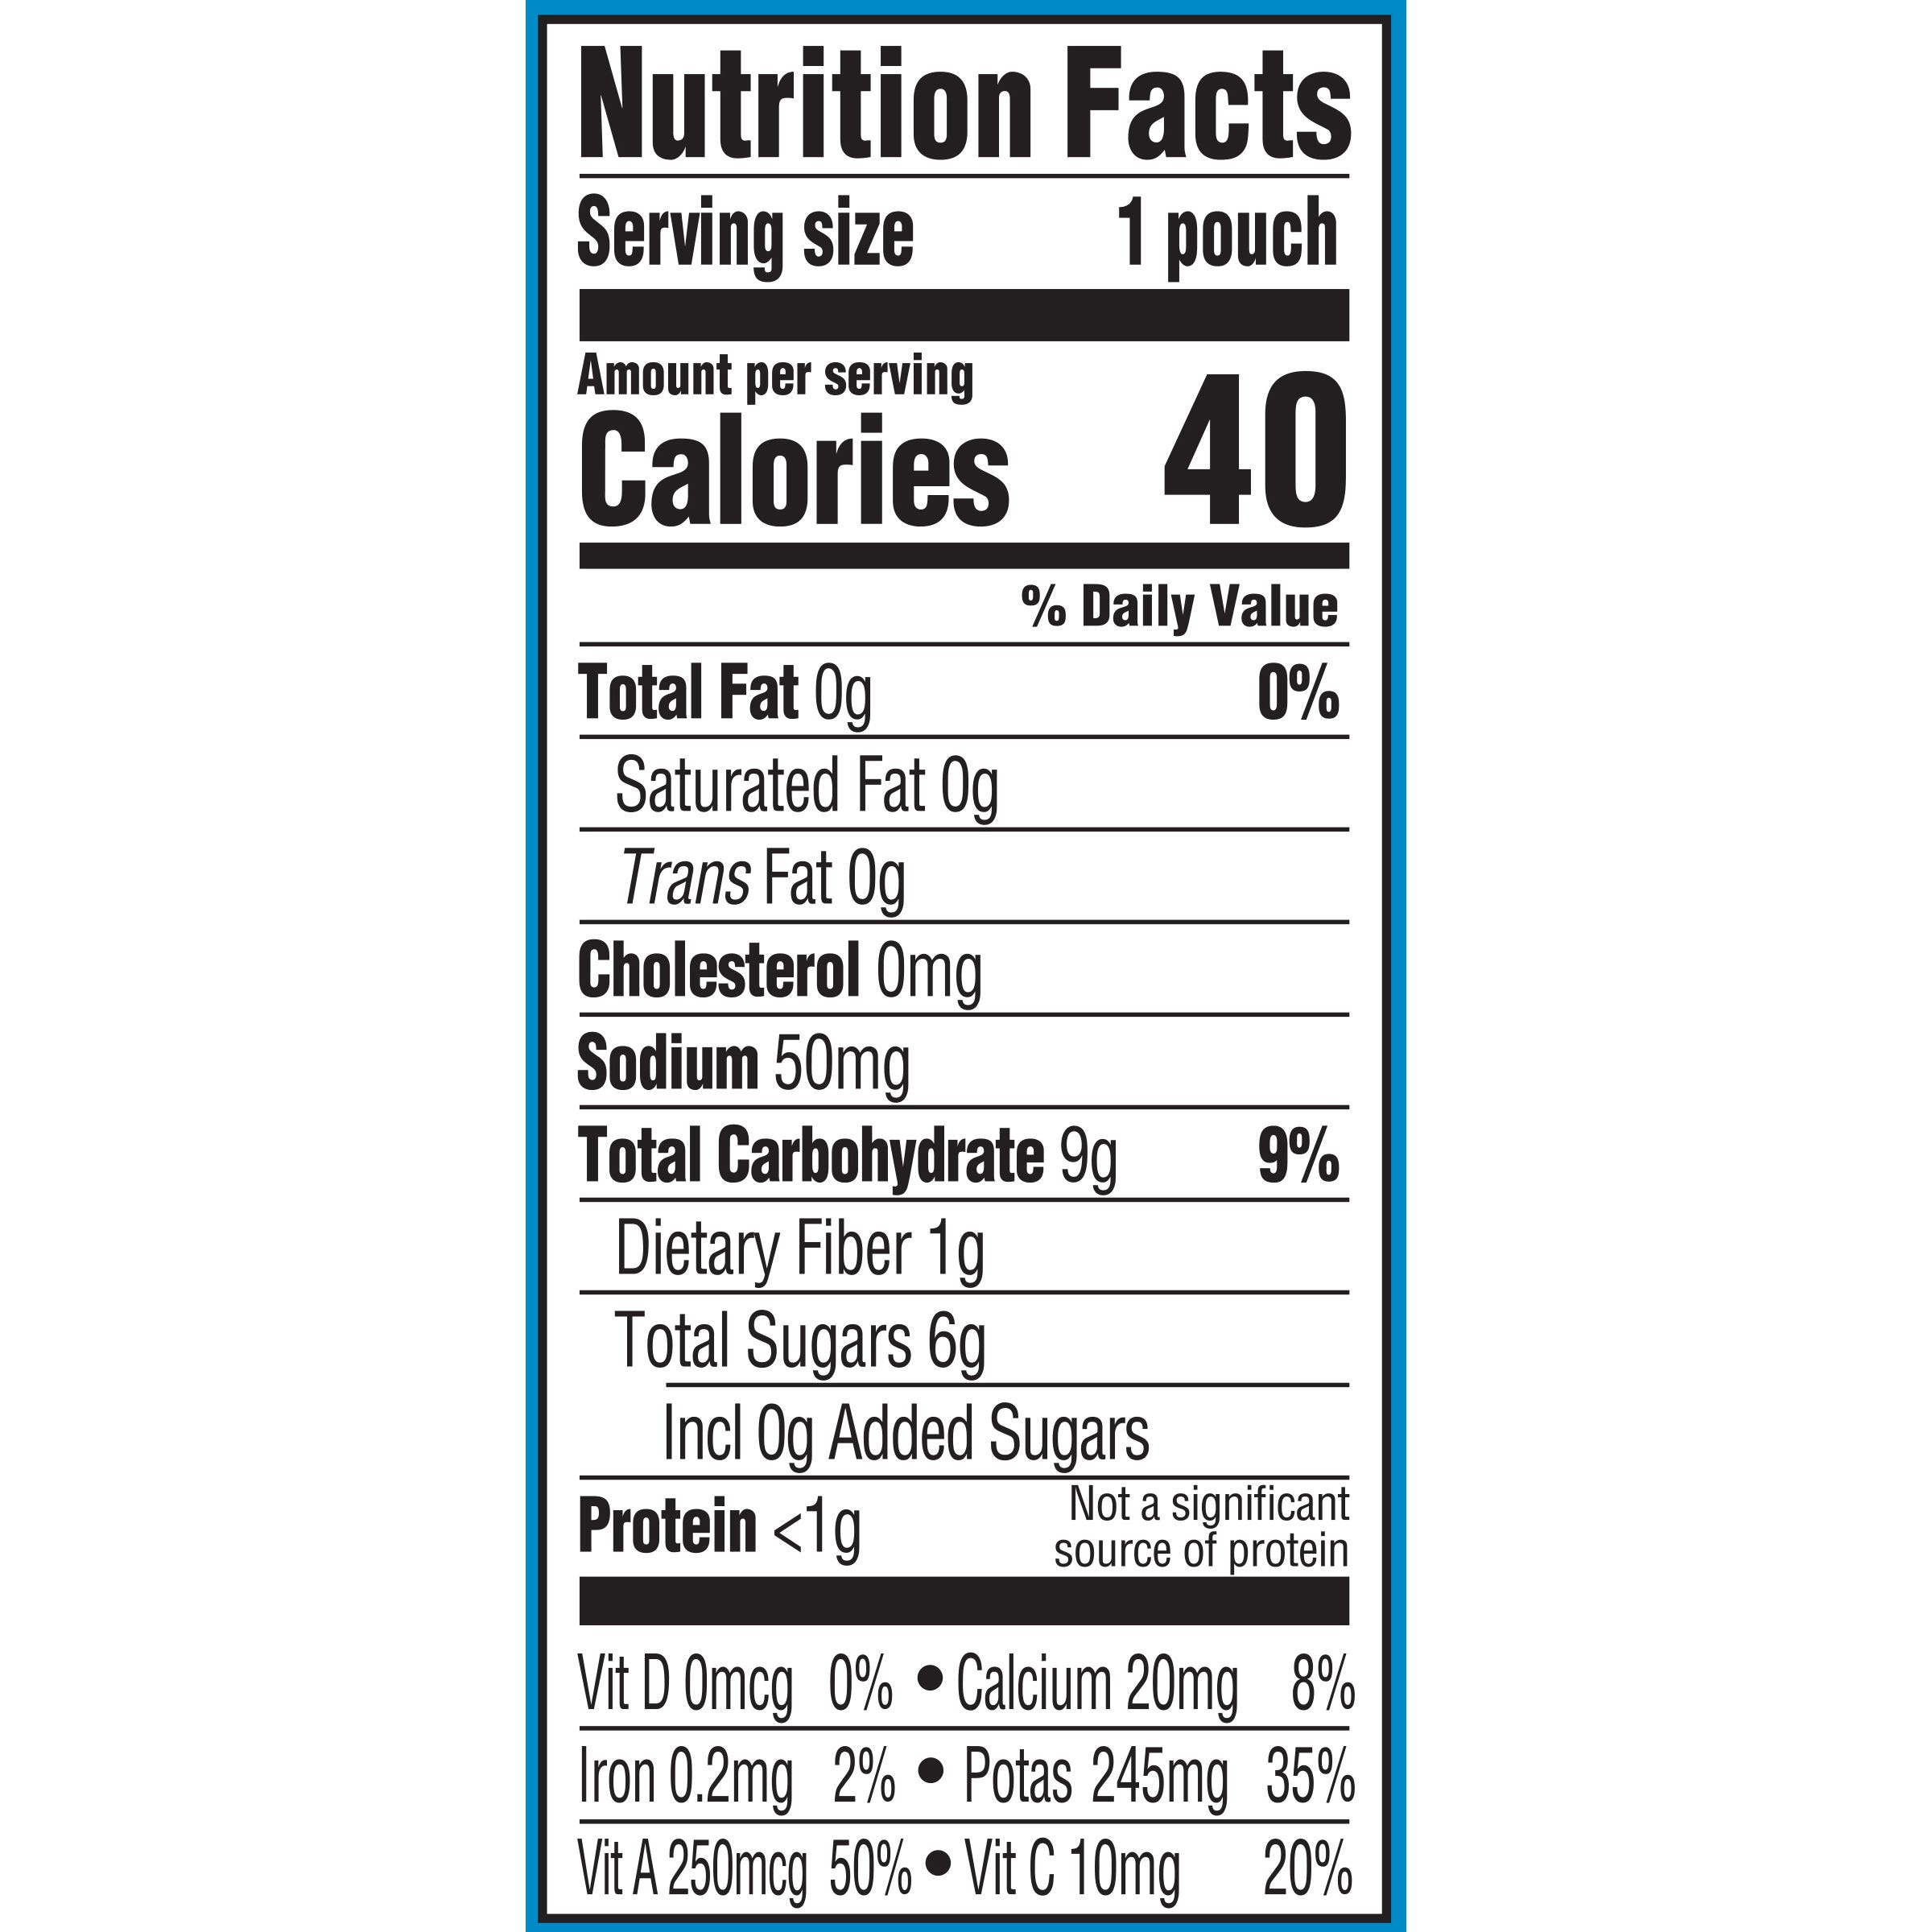 Gerber Natural Carrot Tomato Basil baby food Pouch Nutrition Info